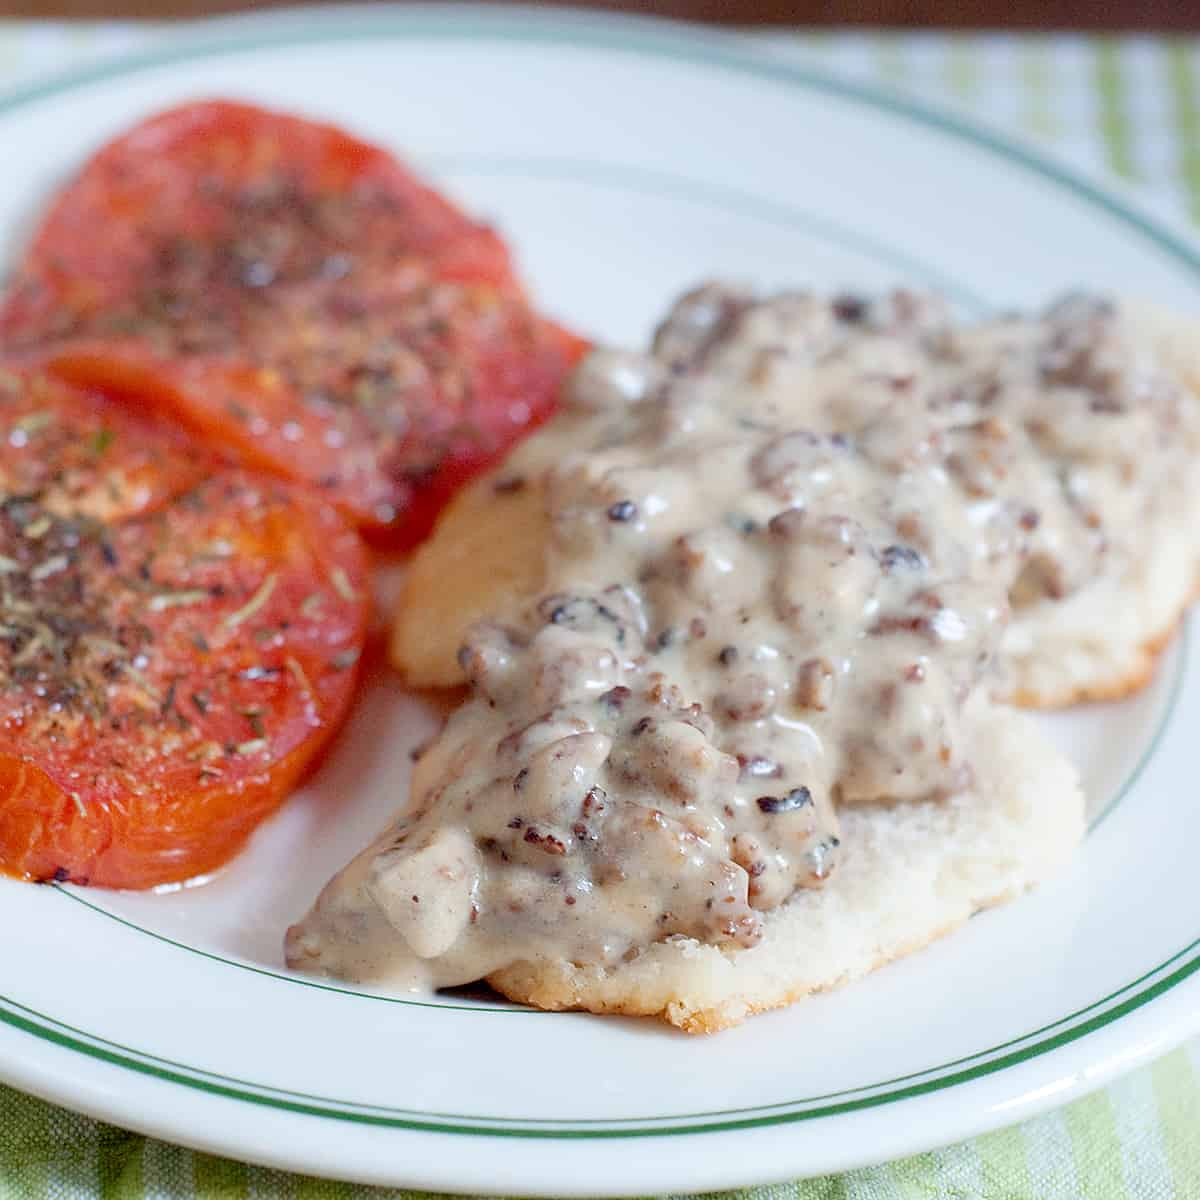 Sausage Gravy and Biscuits with Tomatoes - A hearty country breakfast of sausage gravy served over biscuits with baked, herbed tomato slices on the side. https://www.lanascooking.com/sausage-gravy-and-biscuits-with-tomatoes/